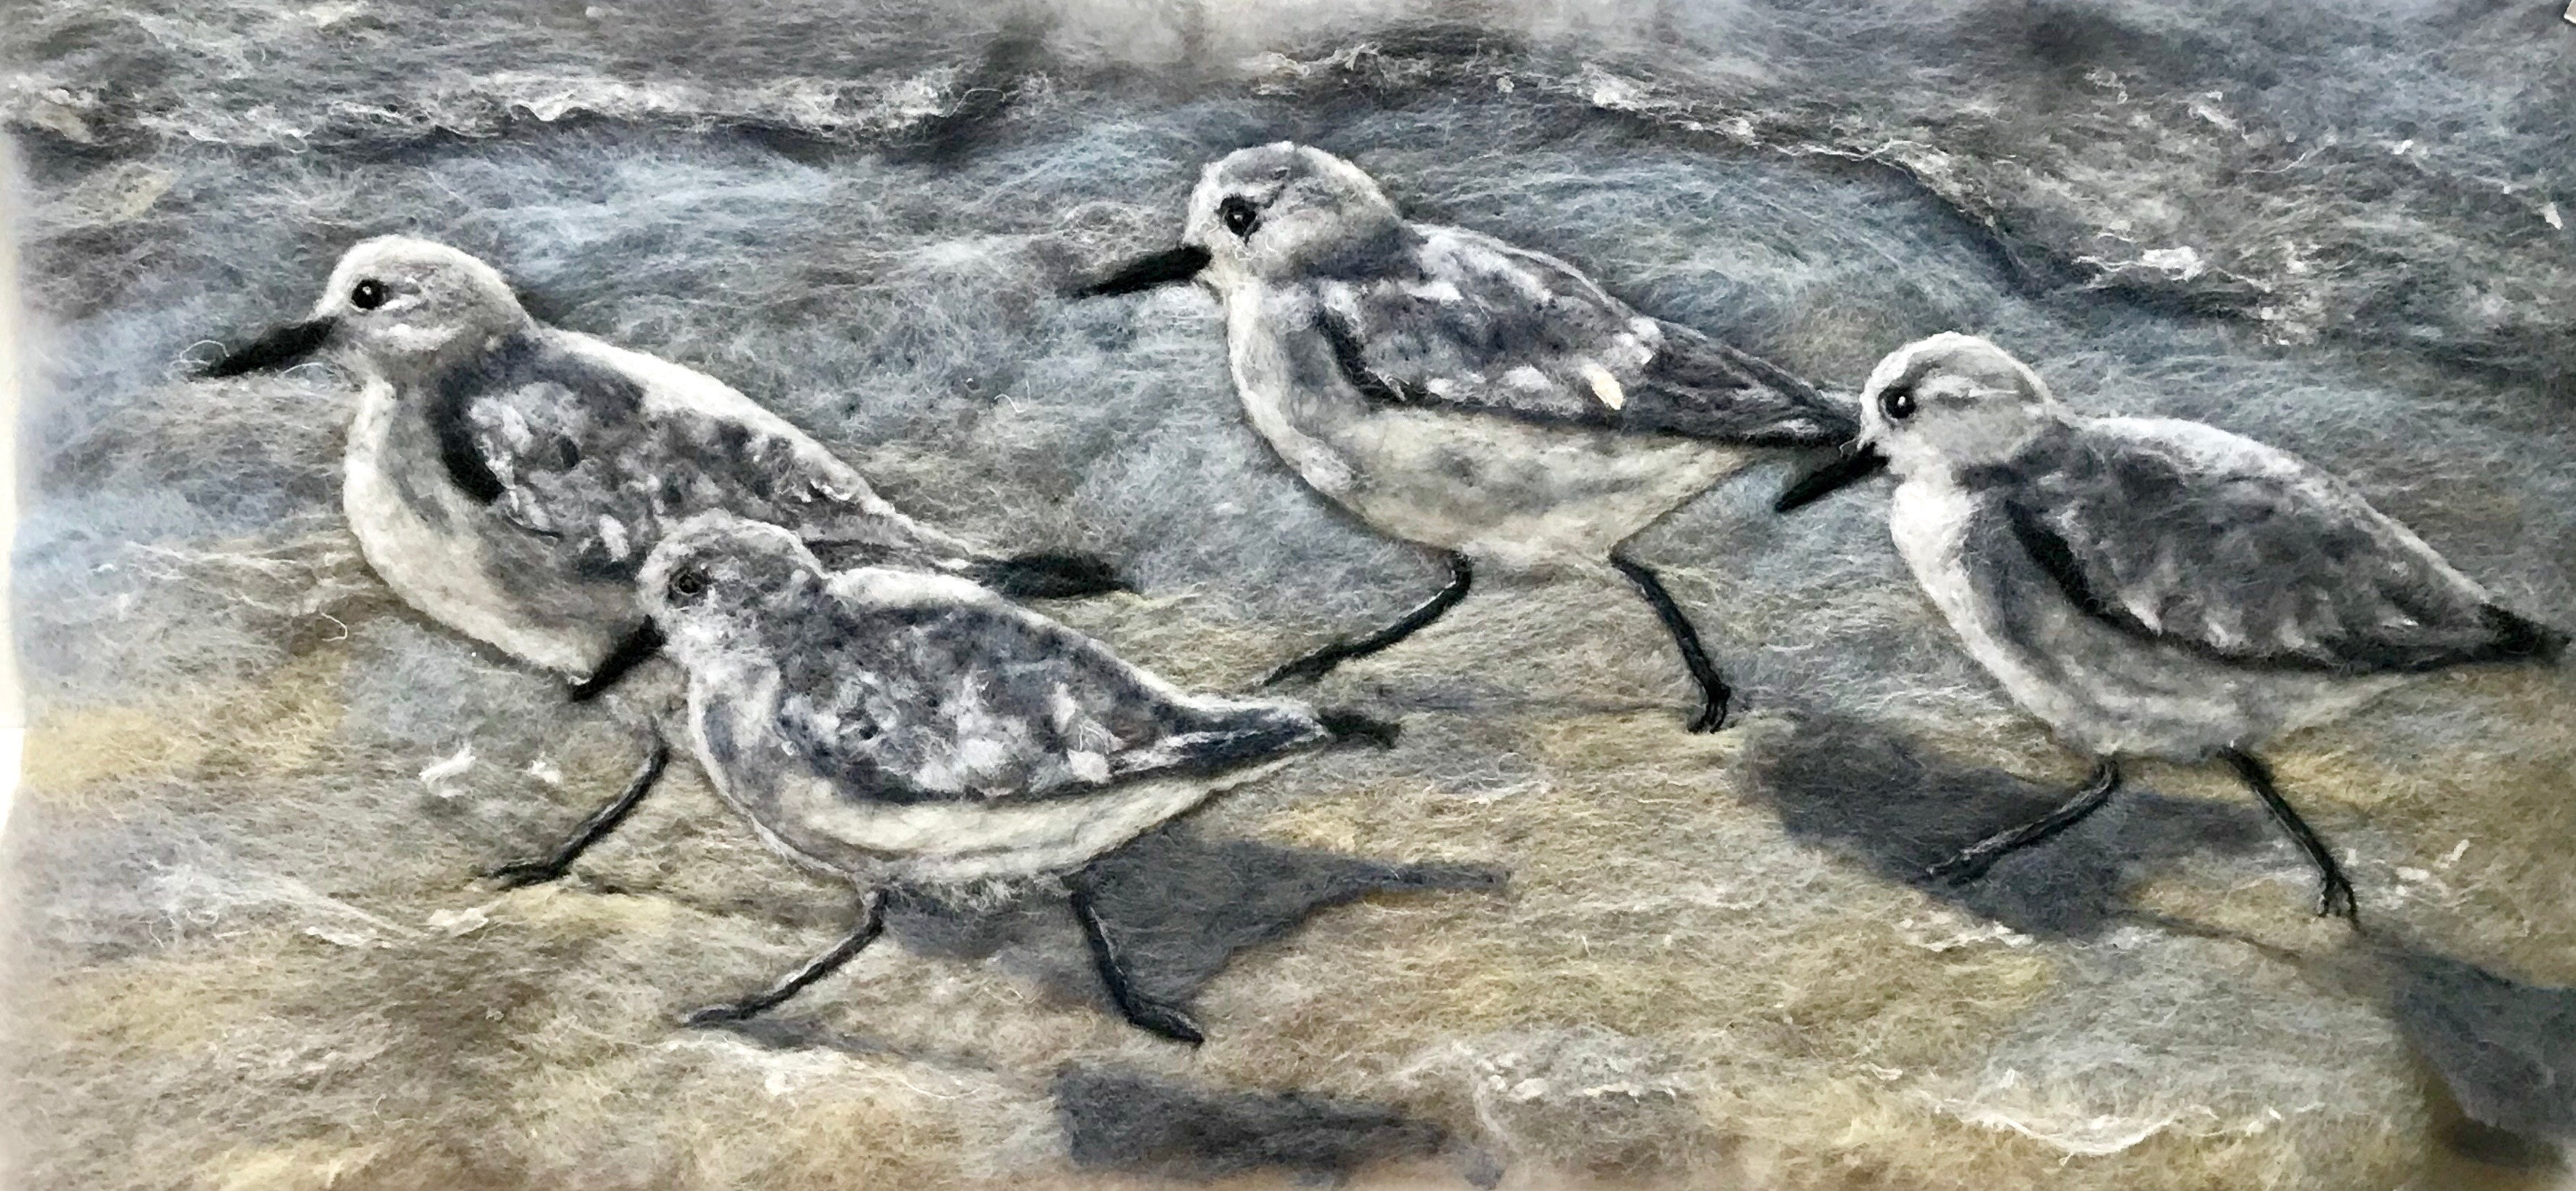 Marie-Louise Gormley: Sandpipers